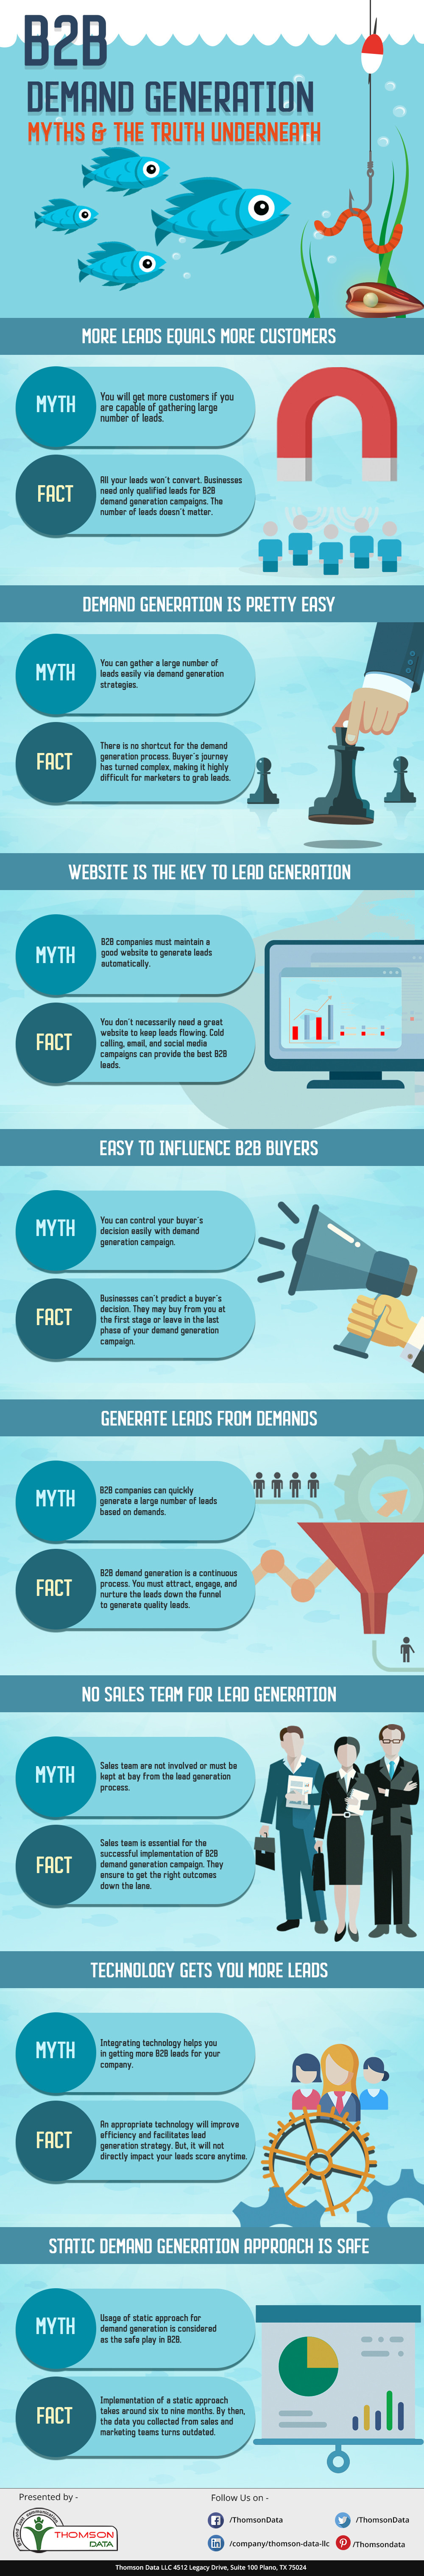 B2B Demand Generation Myths [Infographic]